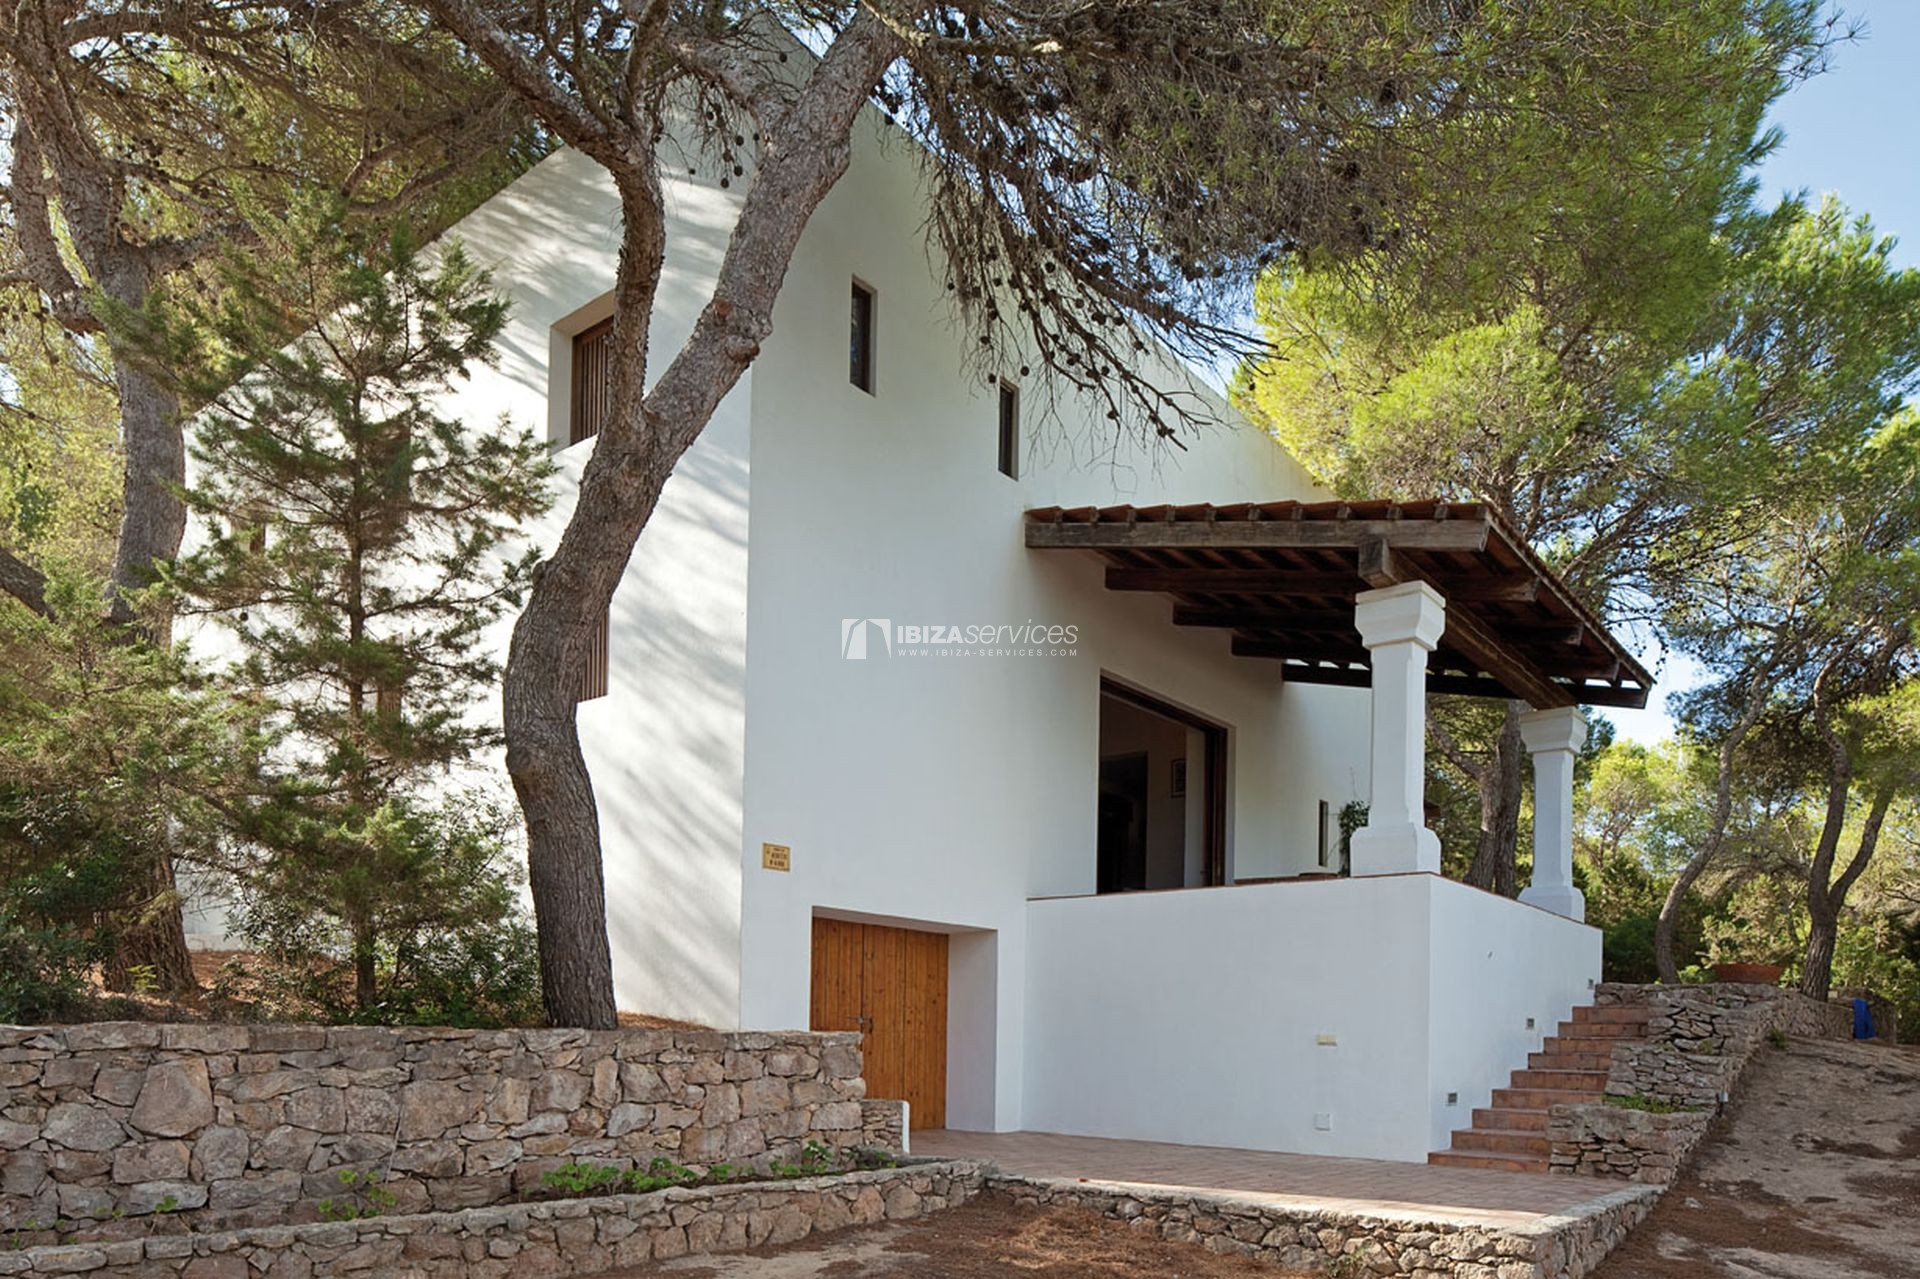 4 bedroom Villa for rent in Formentera perspectiva 1